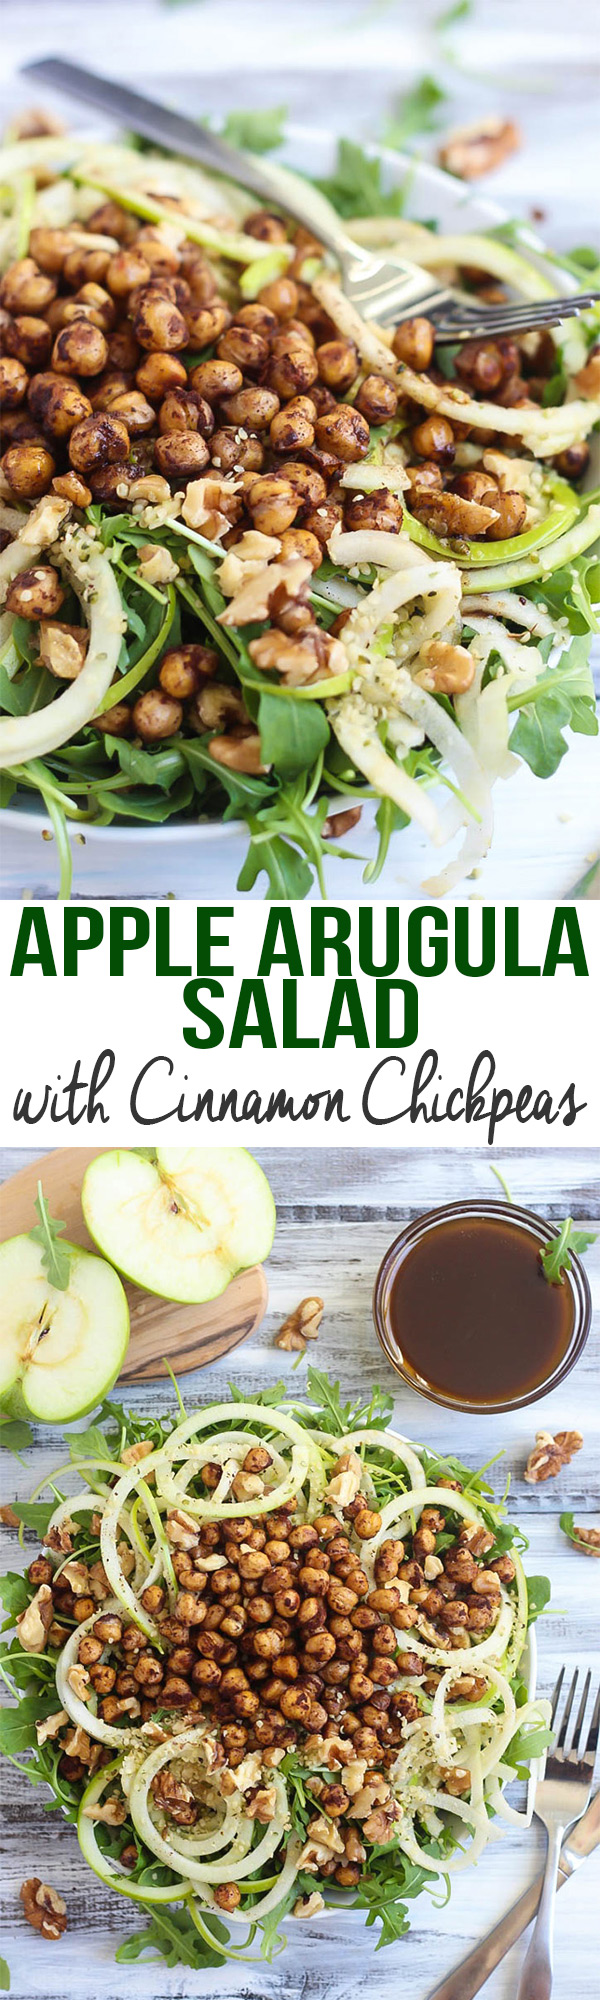 The natural sweetness of apple and cinnamon perfectly complement peppery arugula in this fresh Apple Arugula Salad. The chickpeas add a delicious crunch!